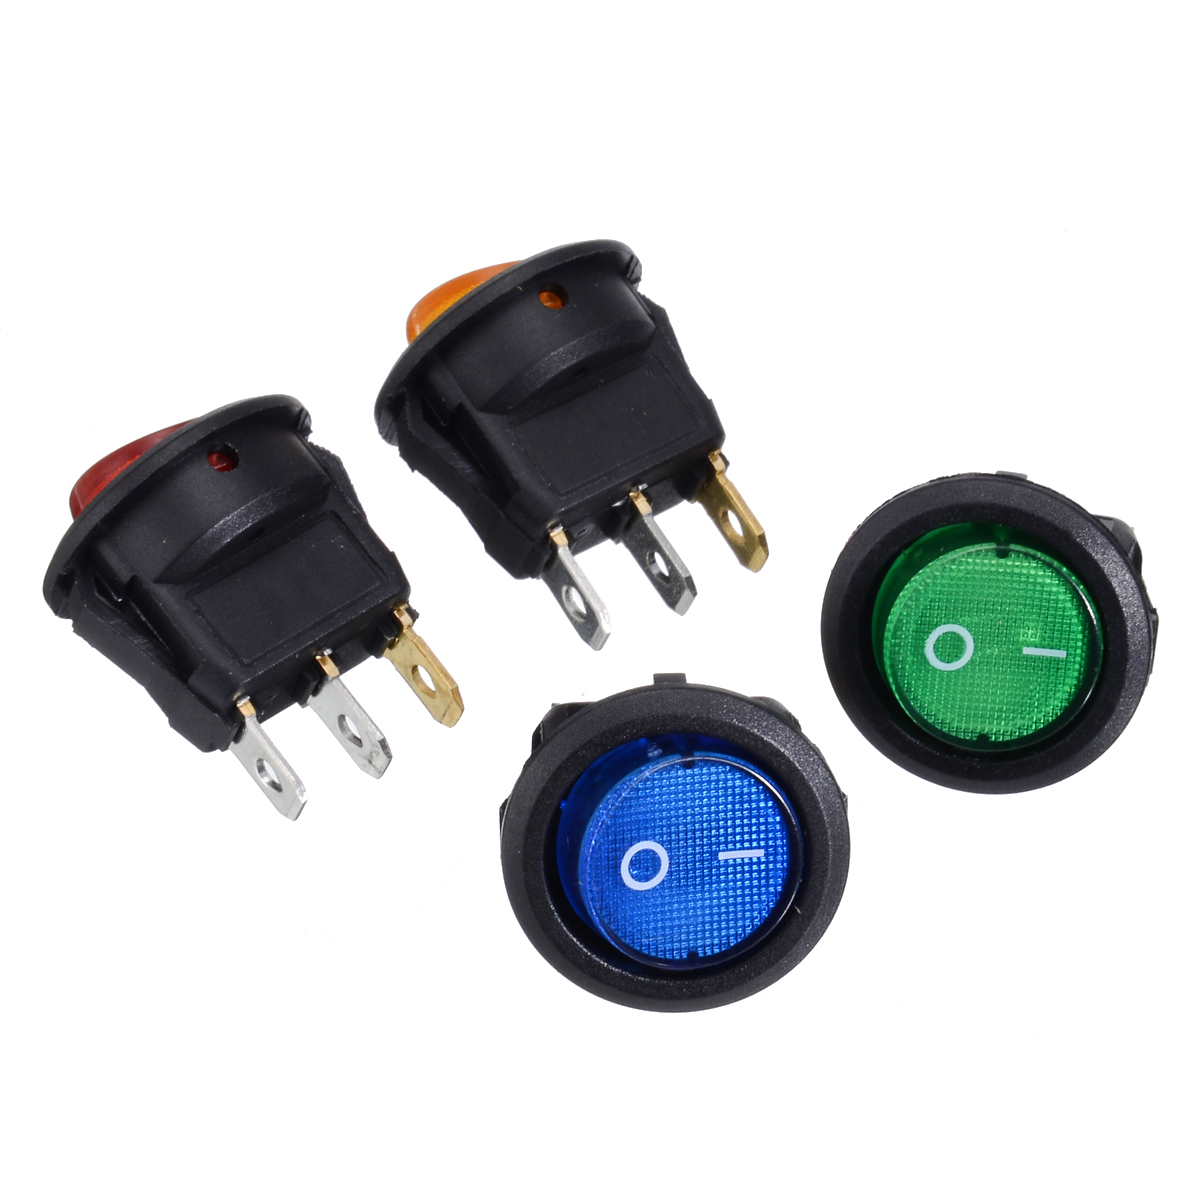 Image 5 - 4Pcs/Set 12V 16A LED Auto Rocker Dot Boat LED Light Toggle Switch Red/Blue/Green/Yellow SPST ON/OFF Top Sales Electric Controls-in Car Switches & Relays from Automobiles & Motorcycles